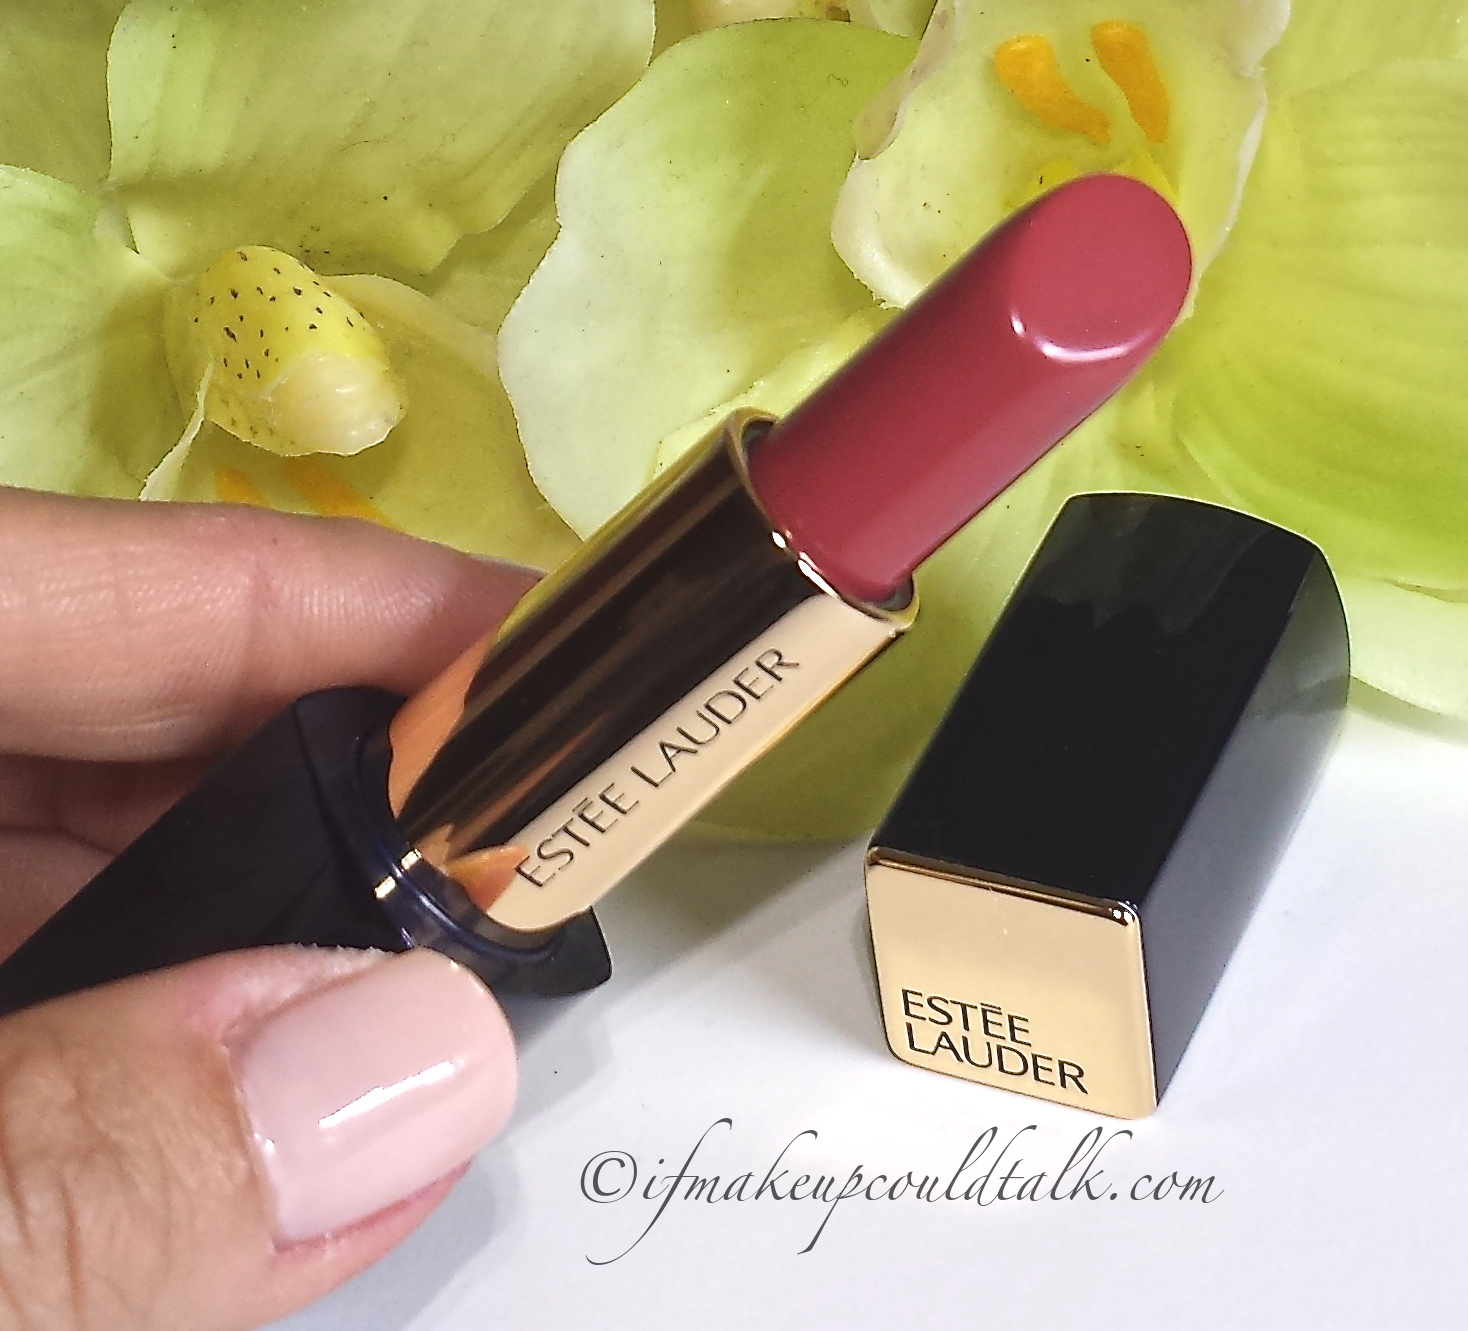 Estee Lauder Rebellious Rose 420 Pure Color Envy Lipstick review and swatches.